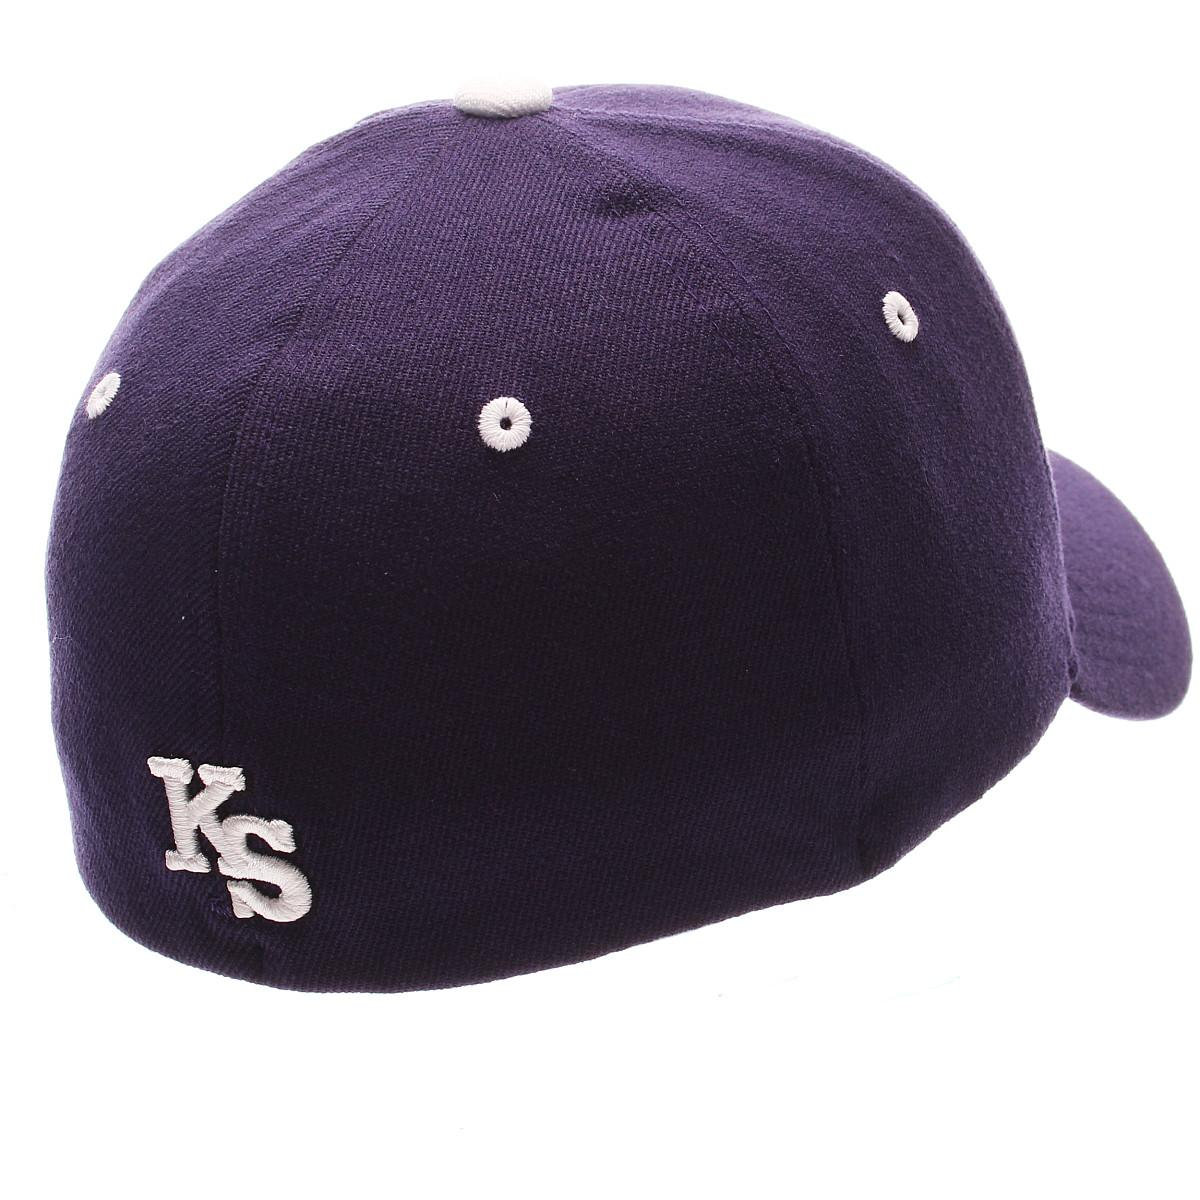 5fedd27b Kansas State Wildcats Official NCAA ZHS X-small Hat Cap by Zephyr ...